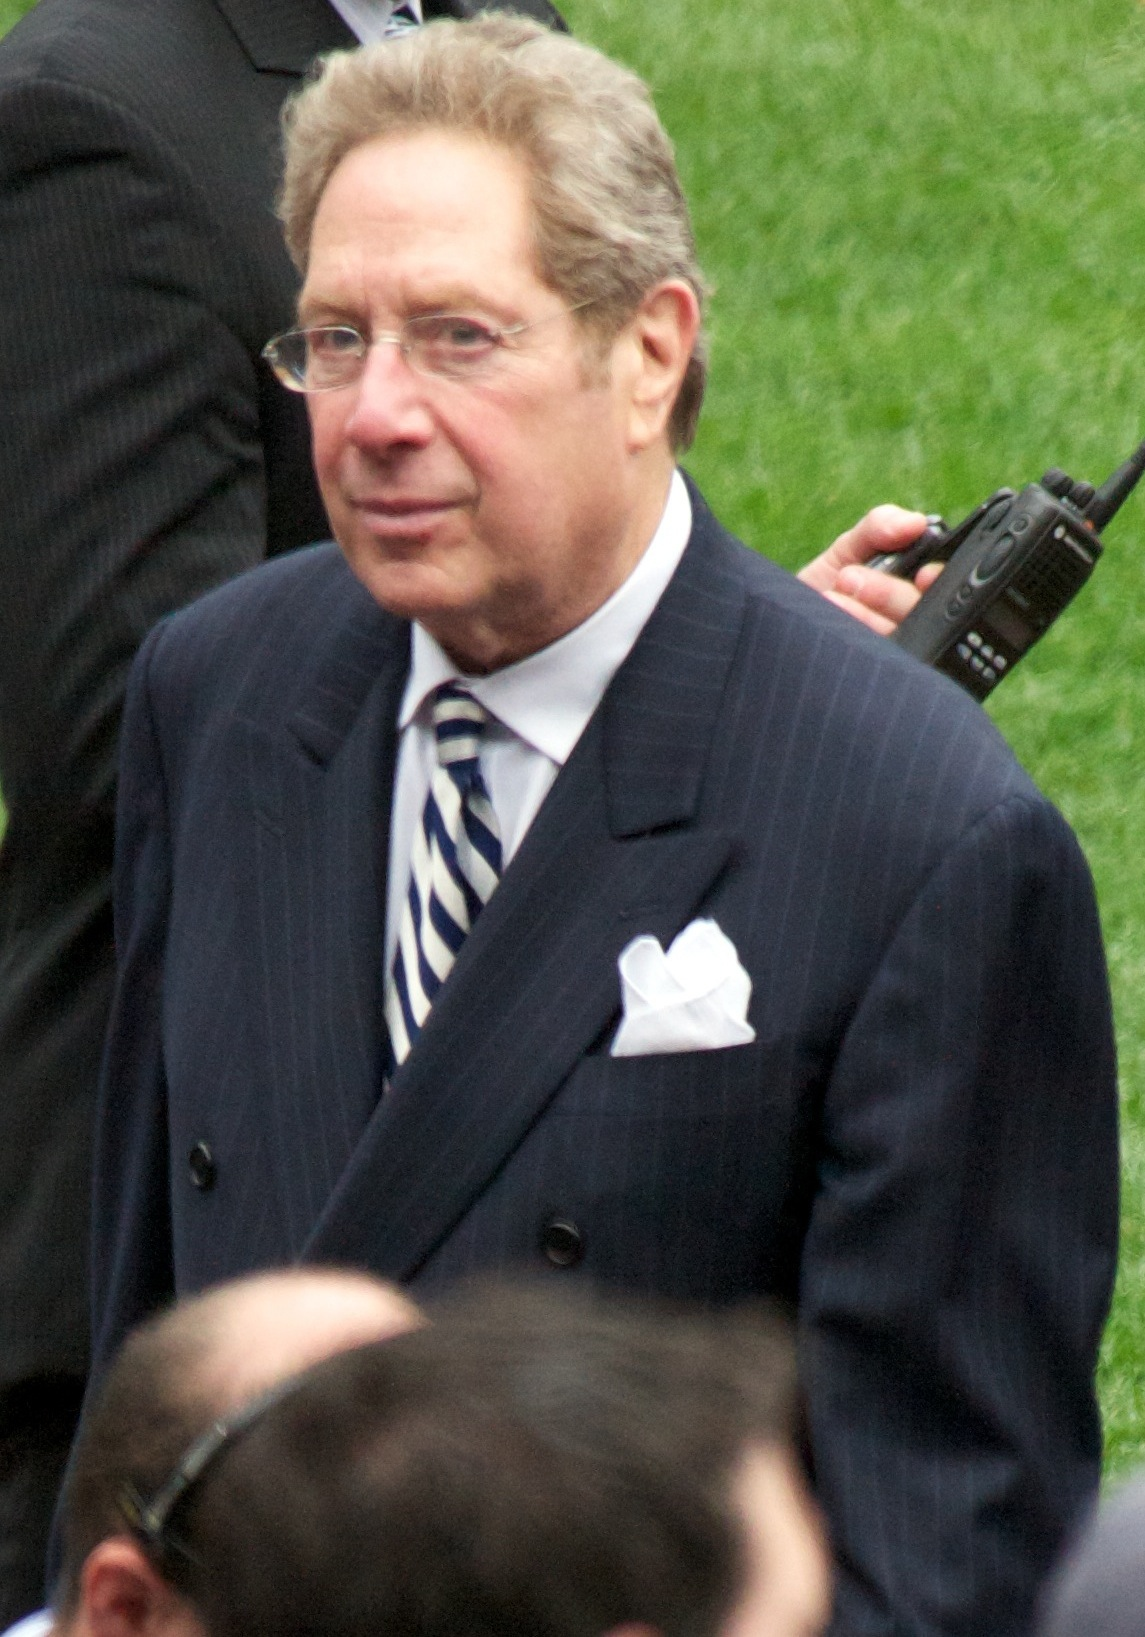 John sterling sportscaster wikipedia for The sterling